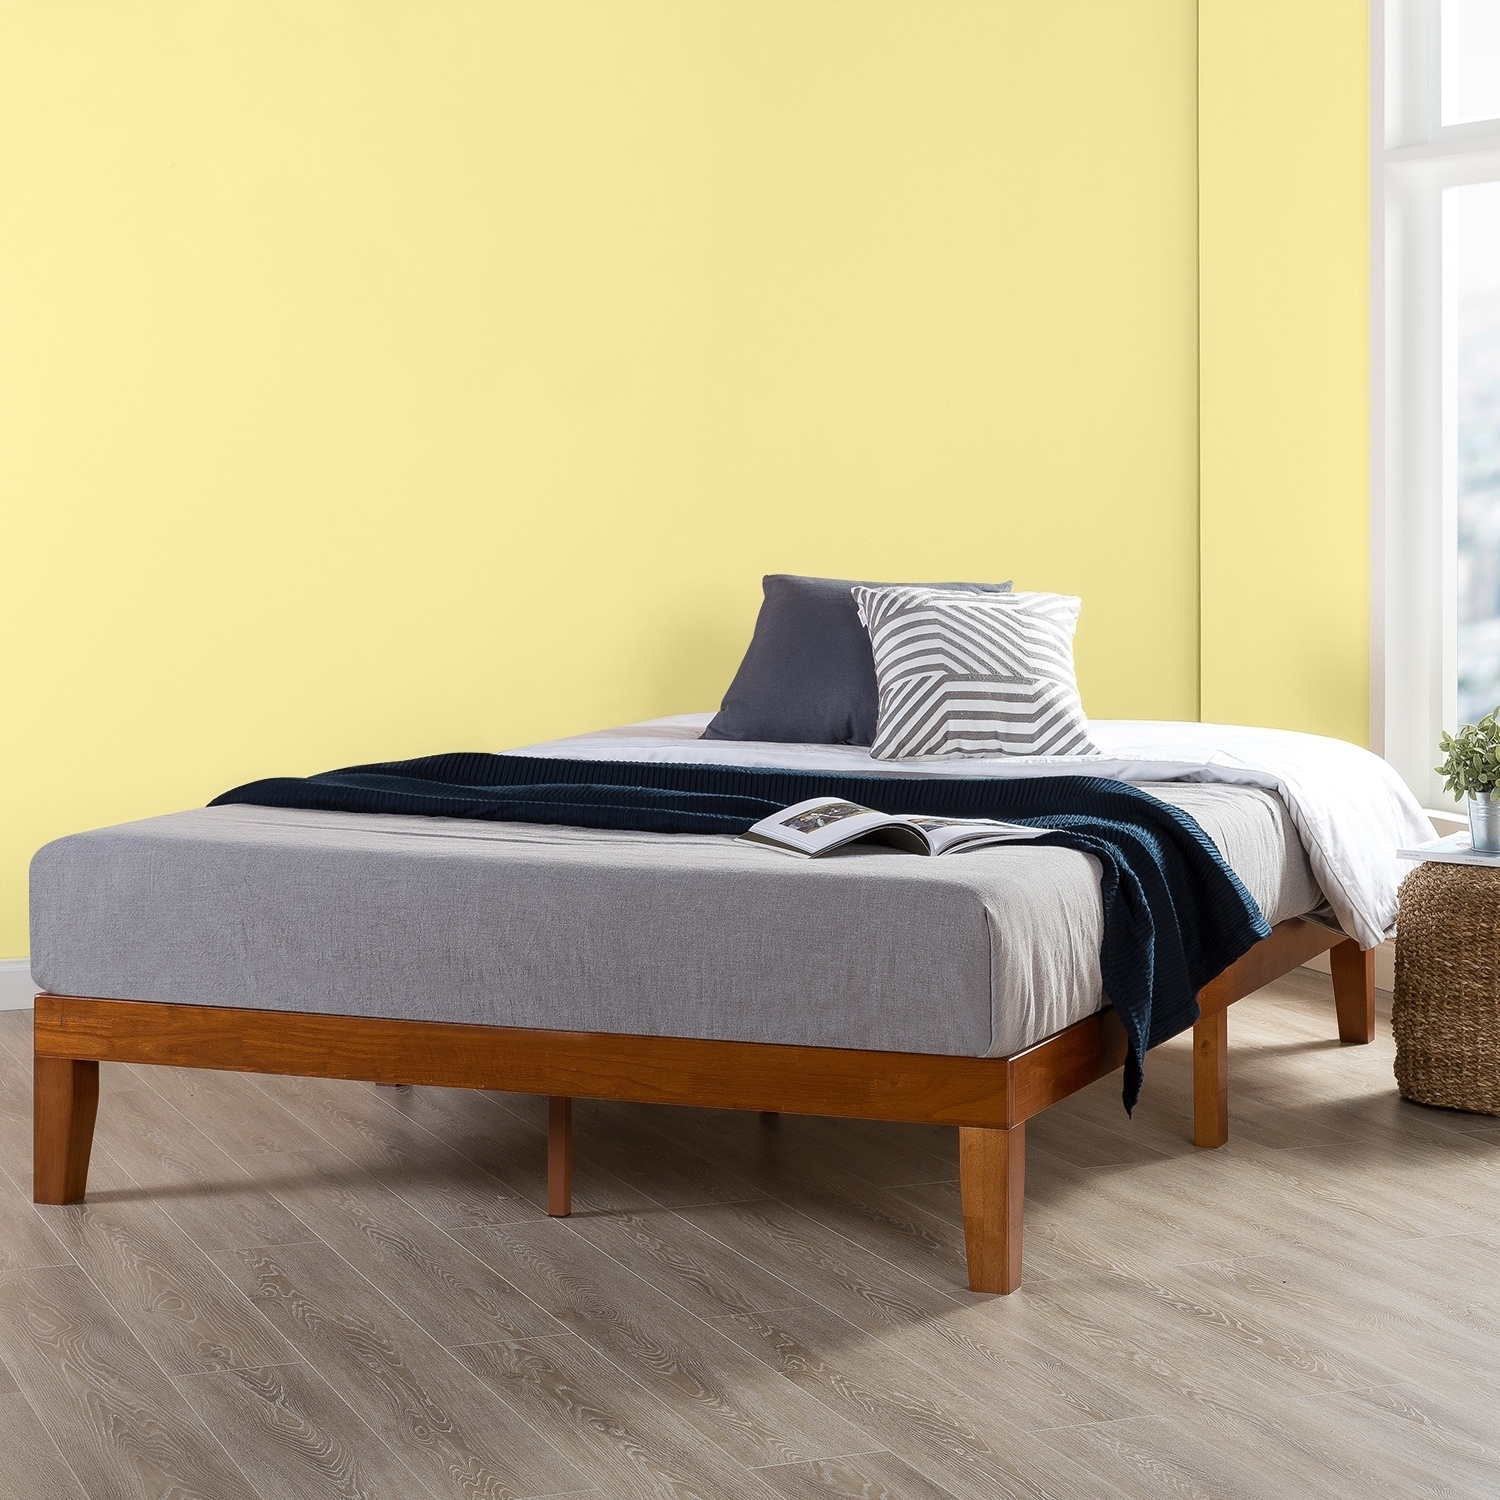 Twin Size 12 Inch Classic Solid Wood Platform Bed Frame, Cherry - Crown Comfort (Twin - Casual/Traditional/Modern & Contemporary - Wood)